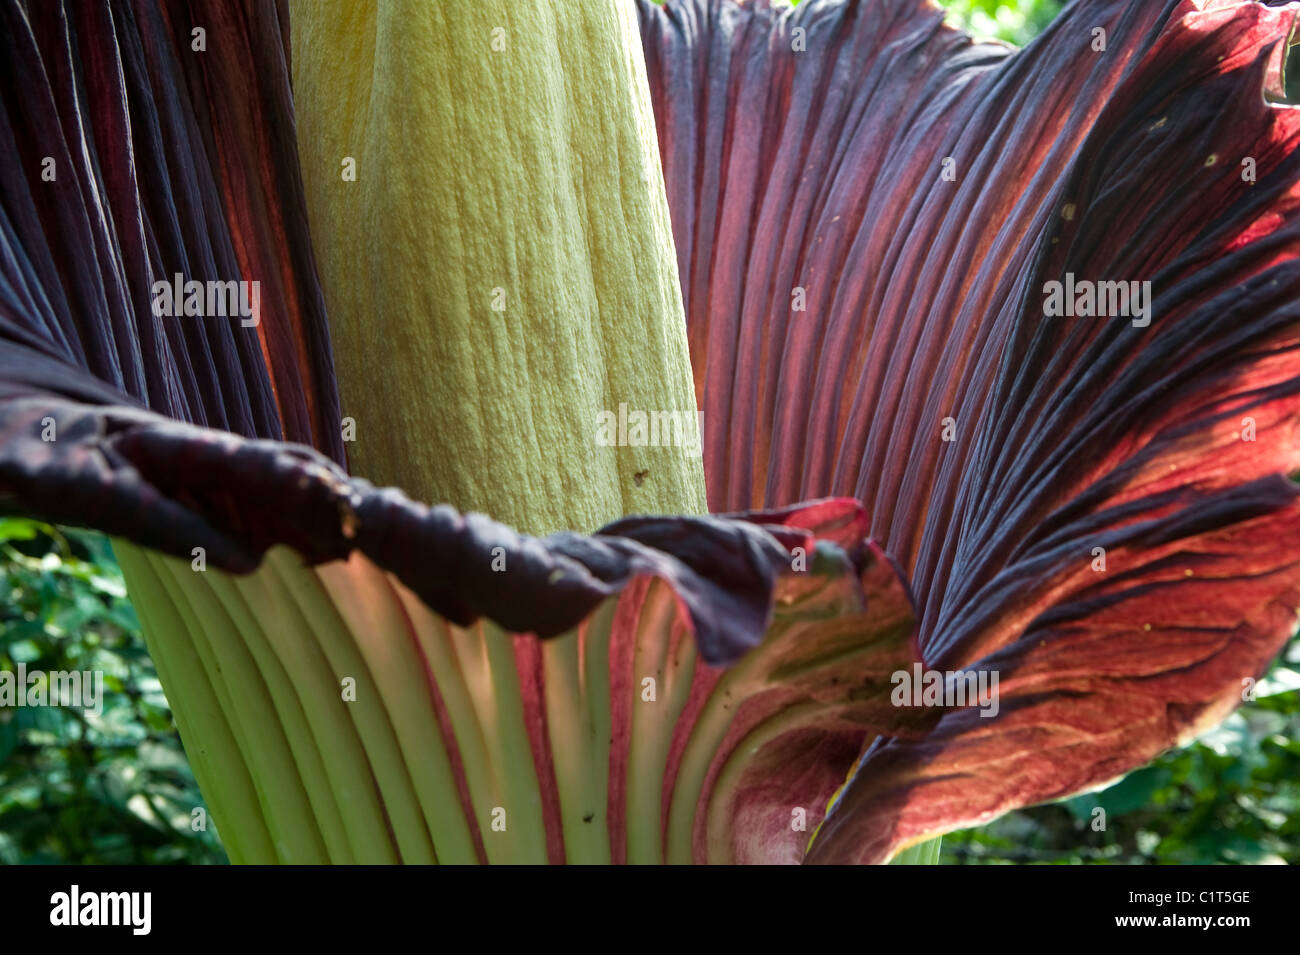 A Titan Arum plant in the Humid Tropics Biome at The Eden Project, Cornwall. - Stock Image